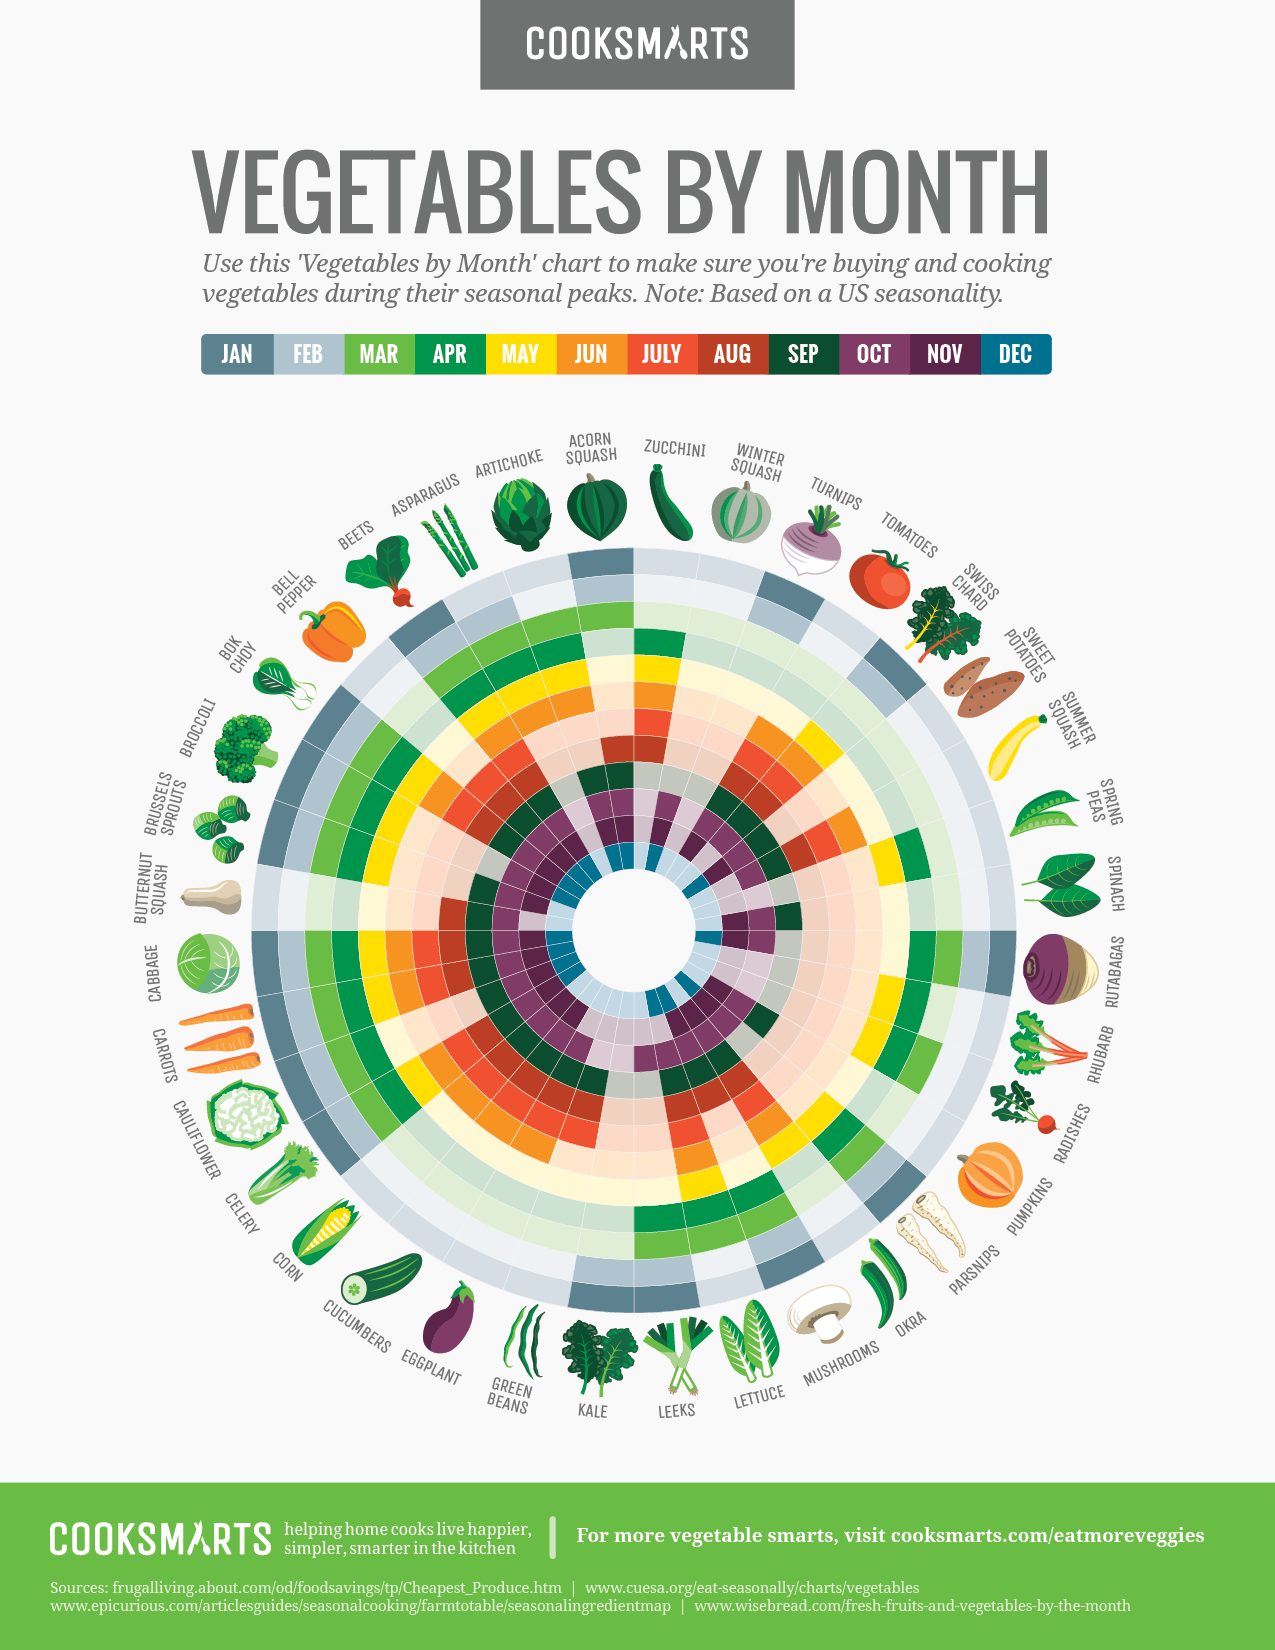 Veggies By Month